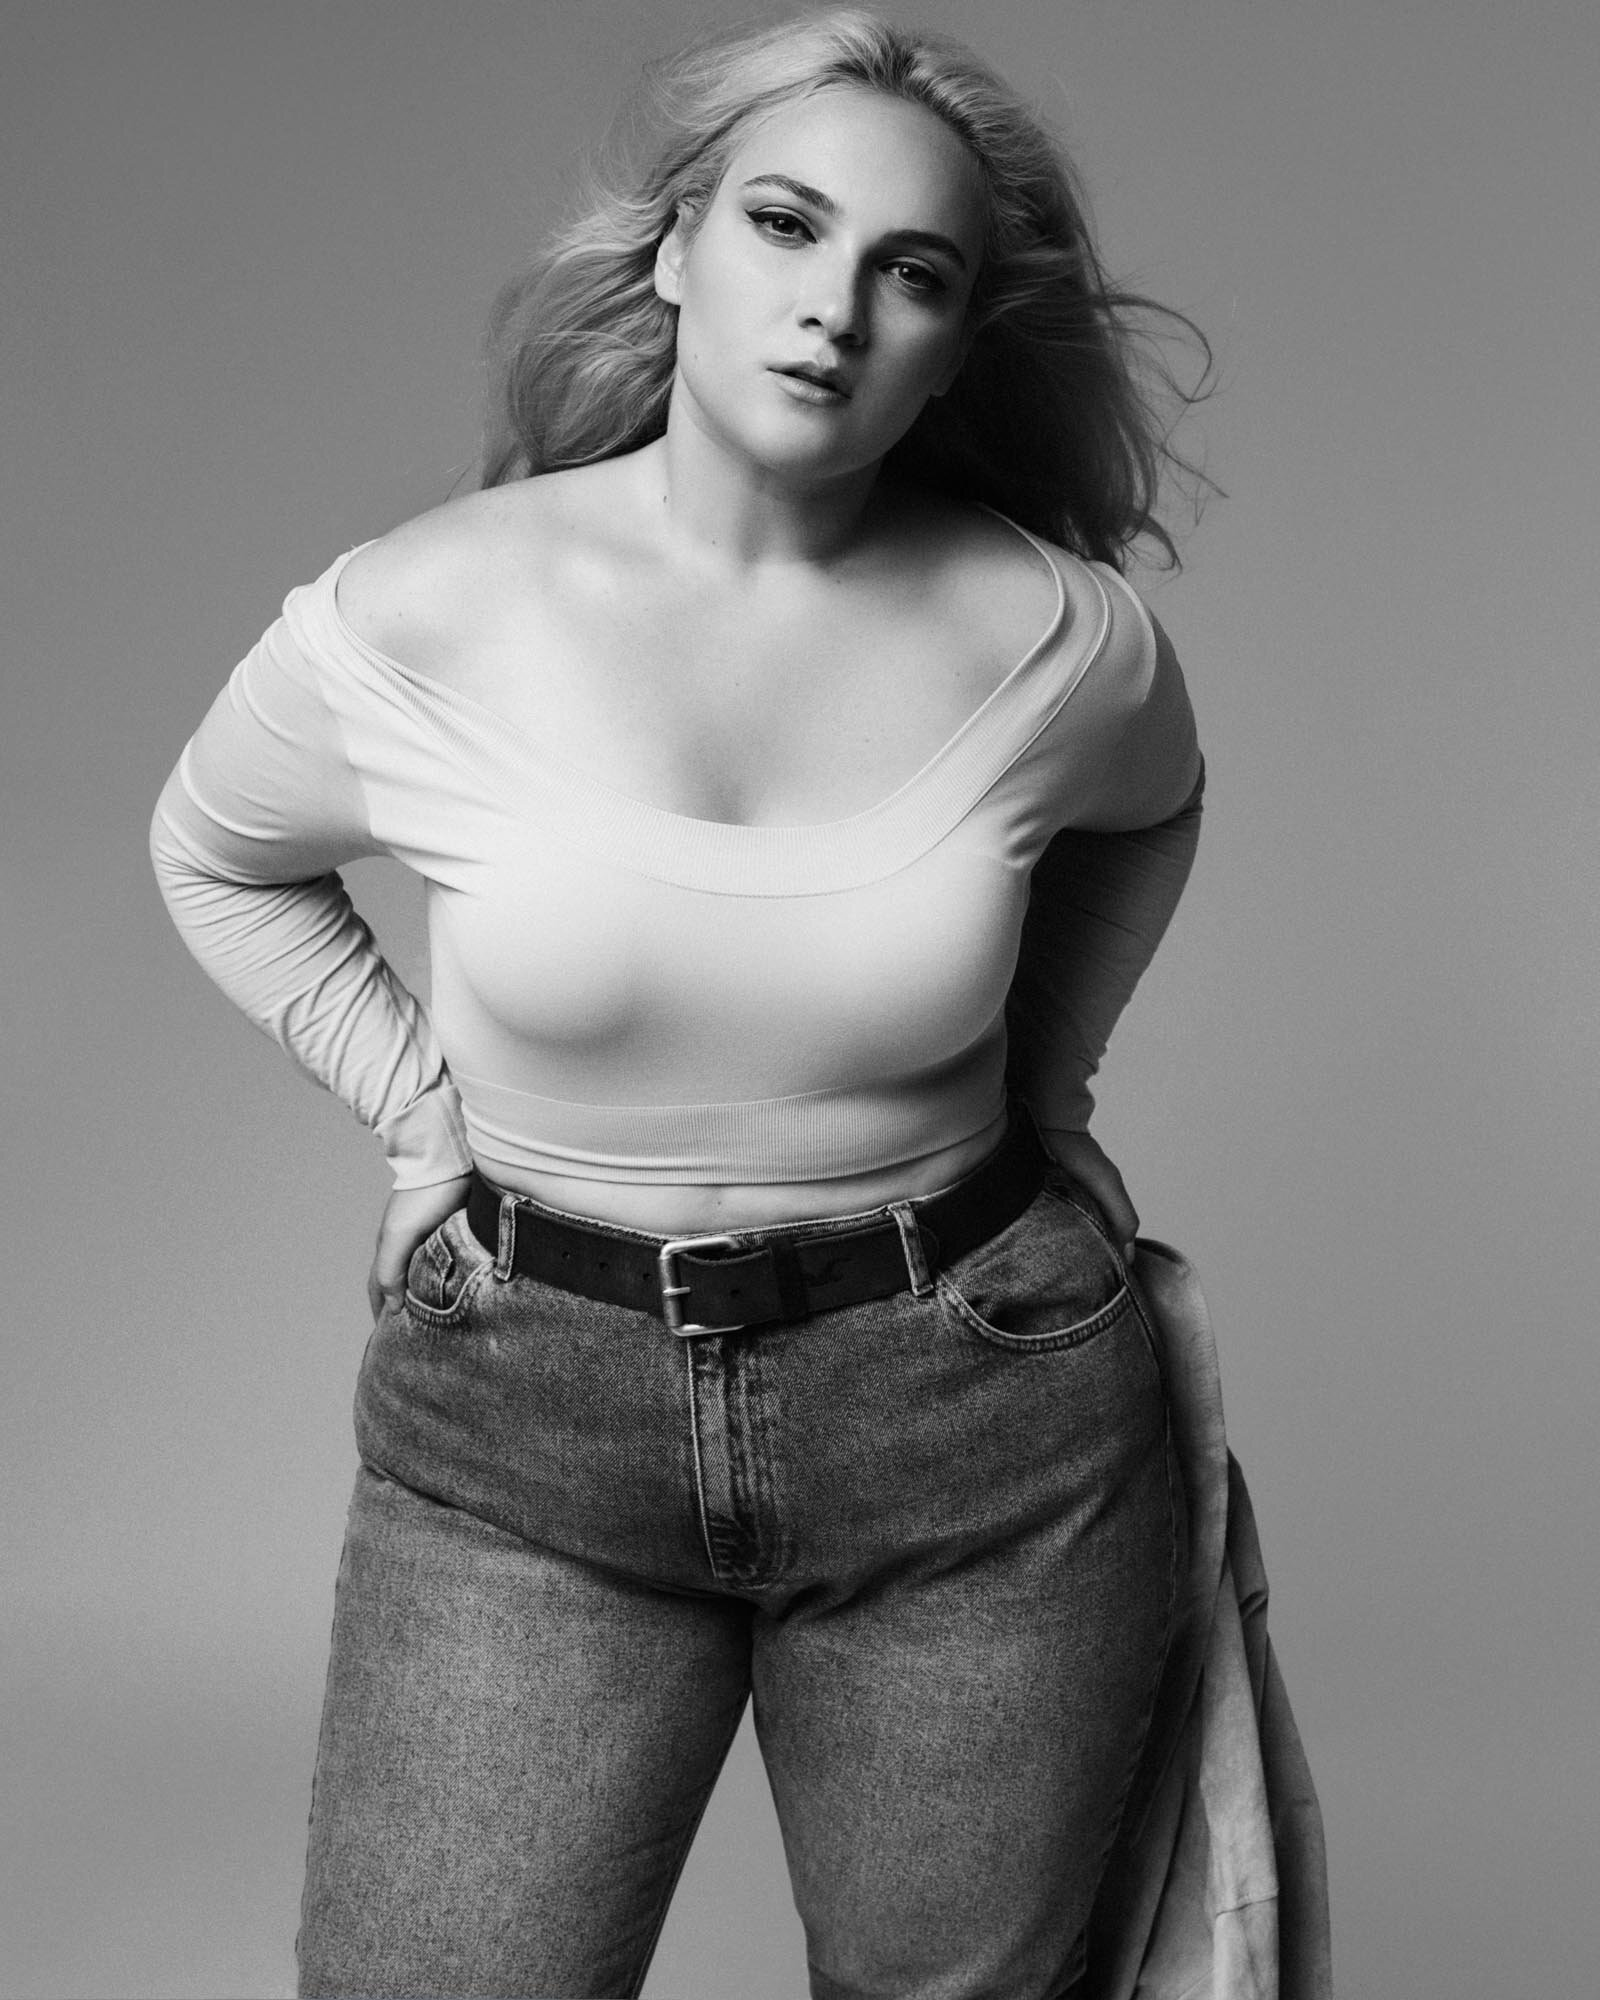 nyc-photographers-plus-size-models-test-10012.jpg